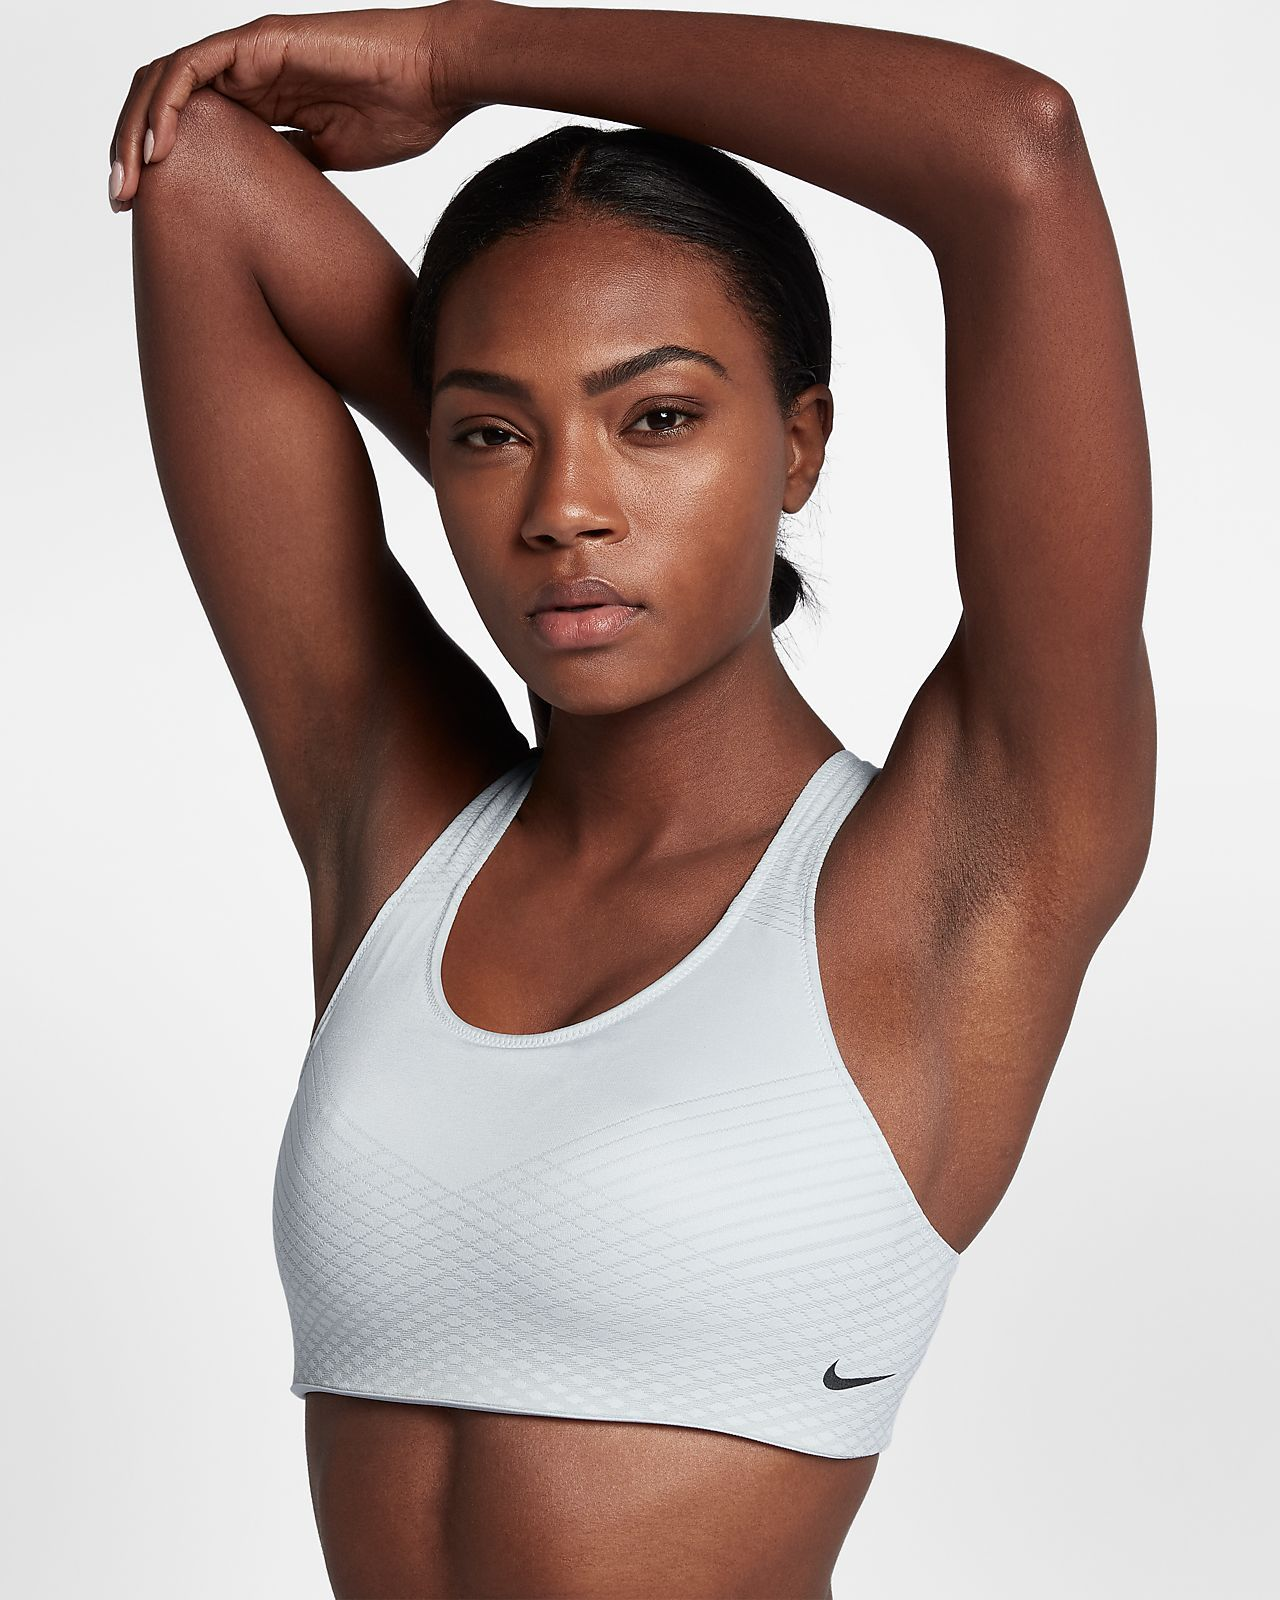 eddc345b84 Nike Fierce Zonal Support Women s Sports Bra